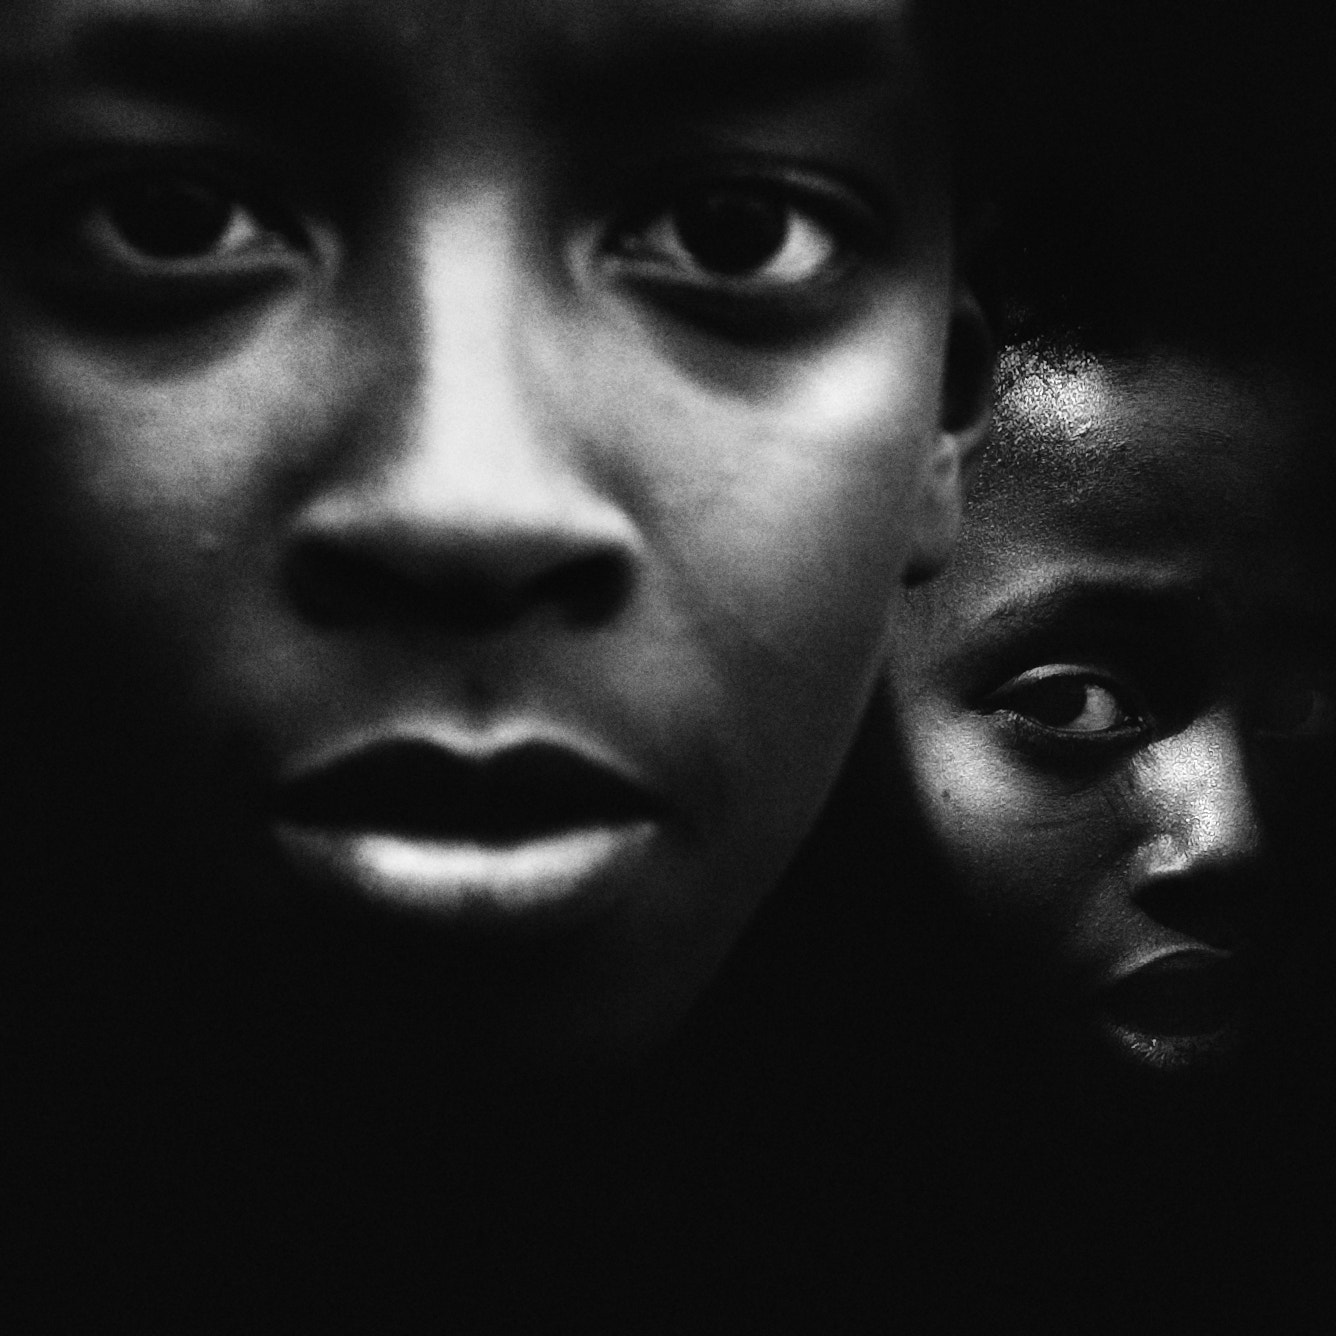 Photograph Untitled by Lee Jeffries on 500px